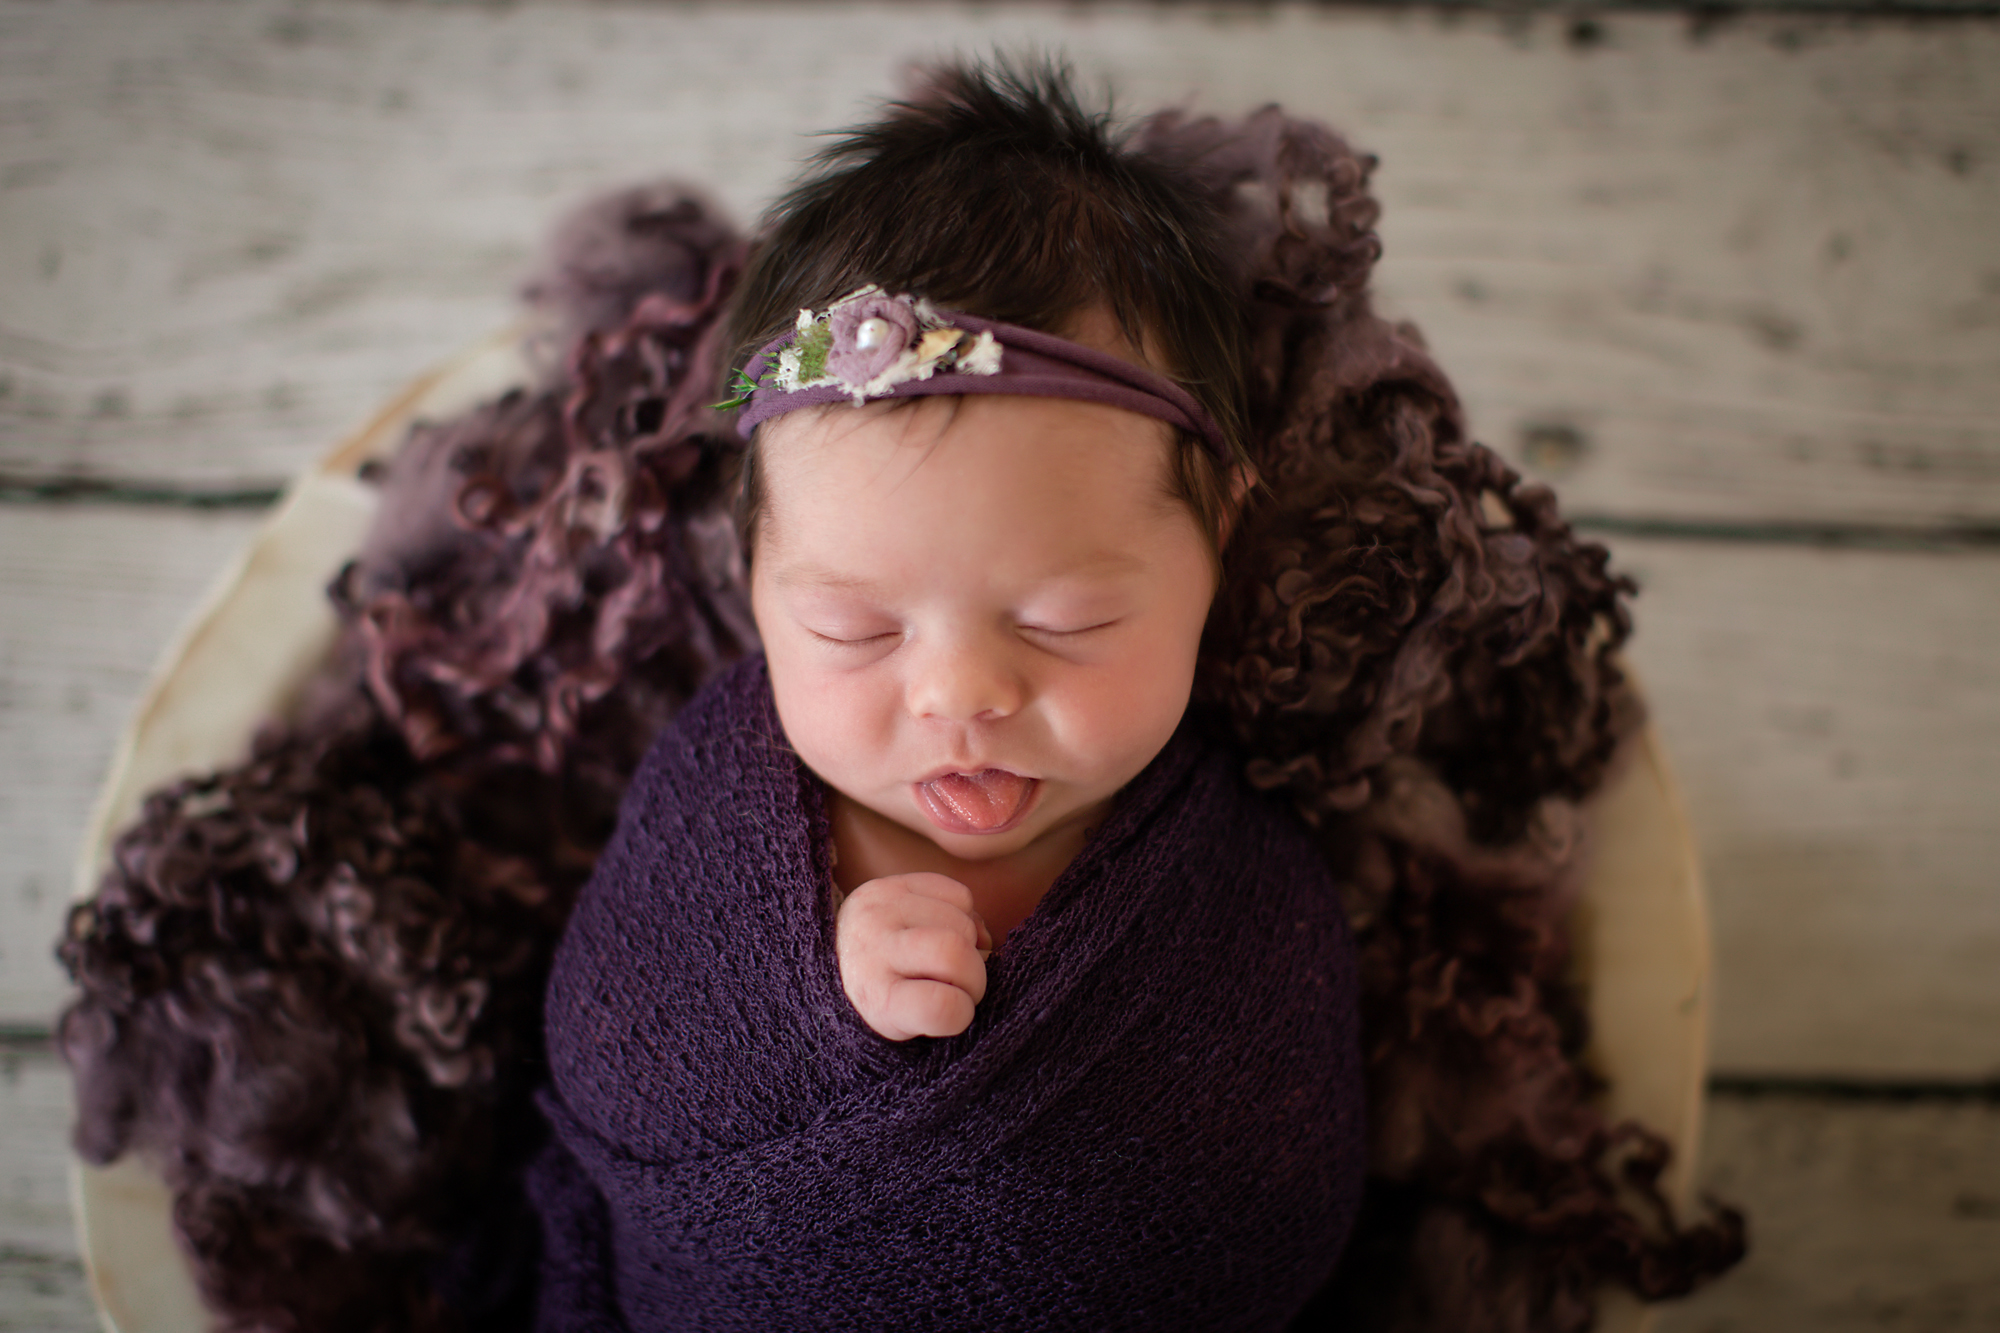 Newborn baby girl photoshoot idea. Baby girl is sticking out her tongue. Baby is posed in a bowl with purple fluff and wrapped in a purple wrap.